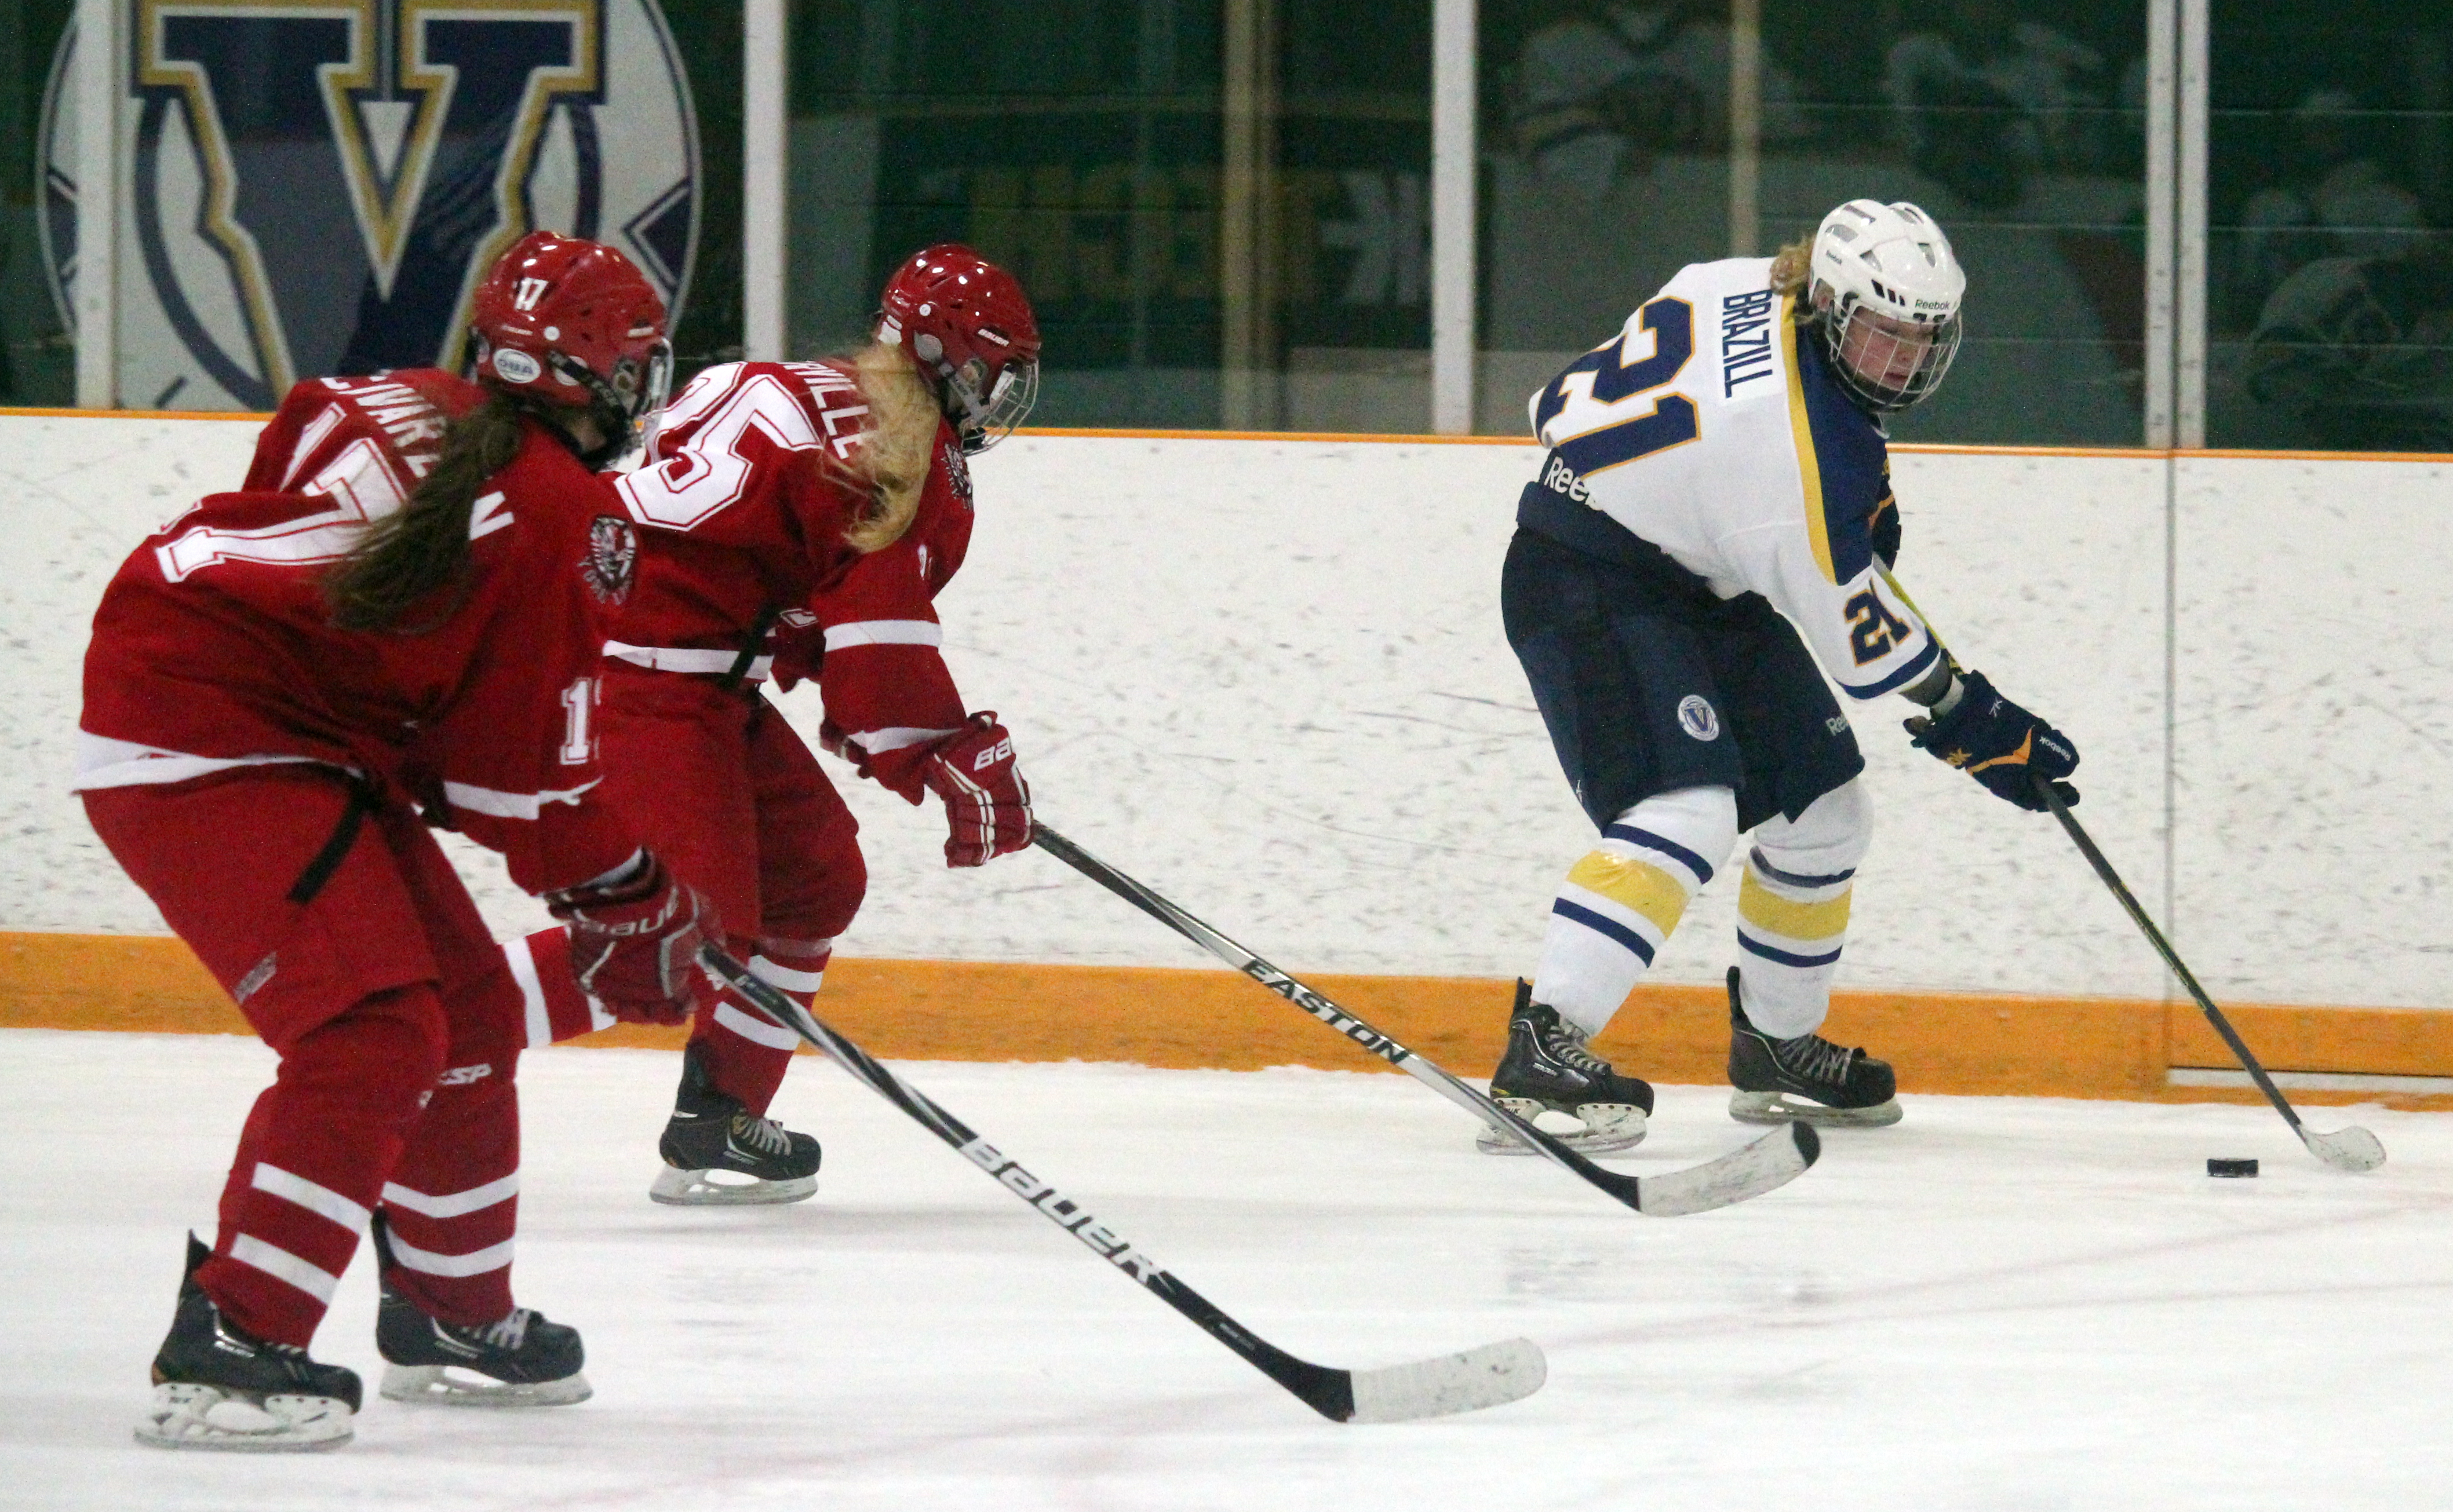 The Laurentian women's hockey team facing the York Lions on Nov. 16. Photo by Gabriel Rodrigues.